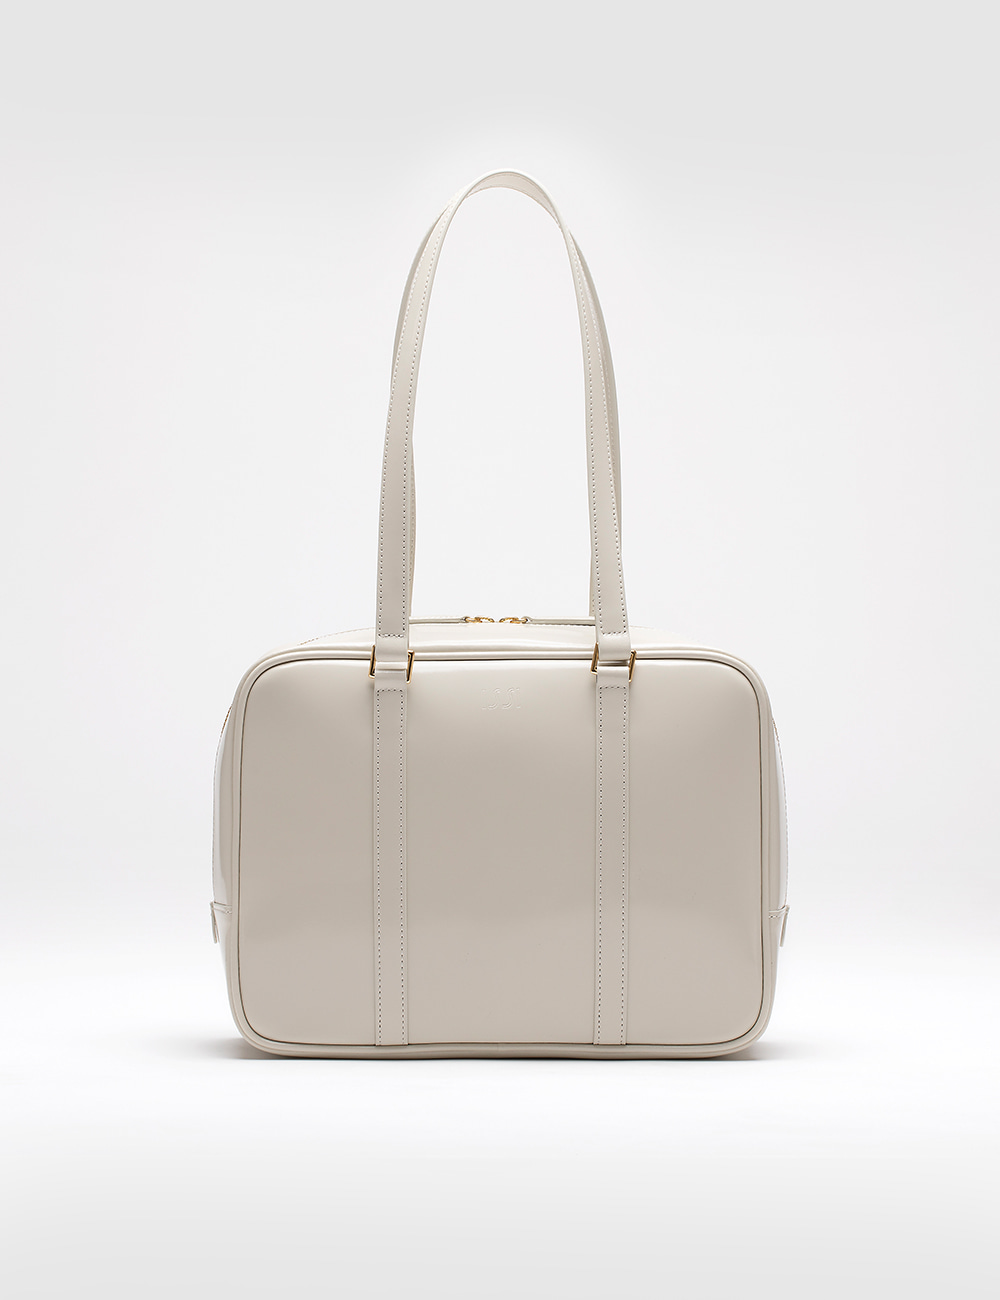 Club Bag, Cream